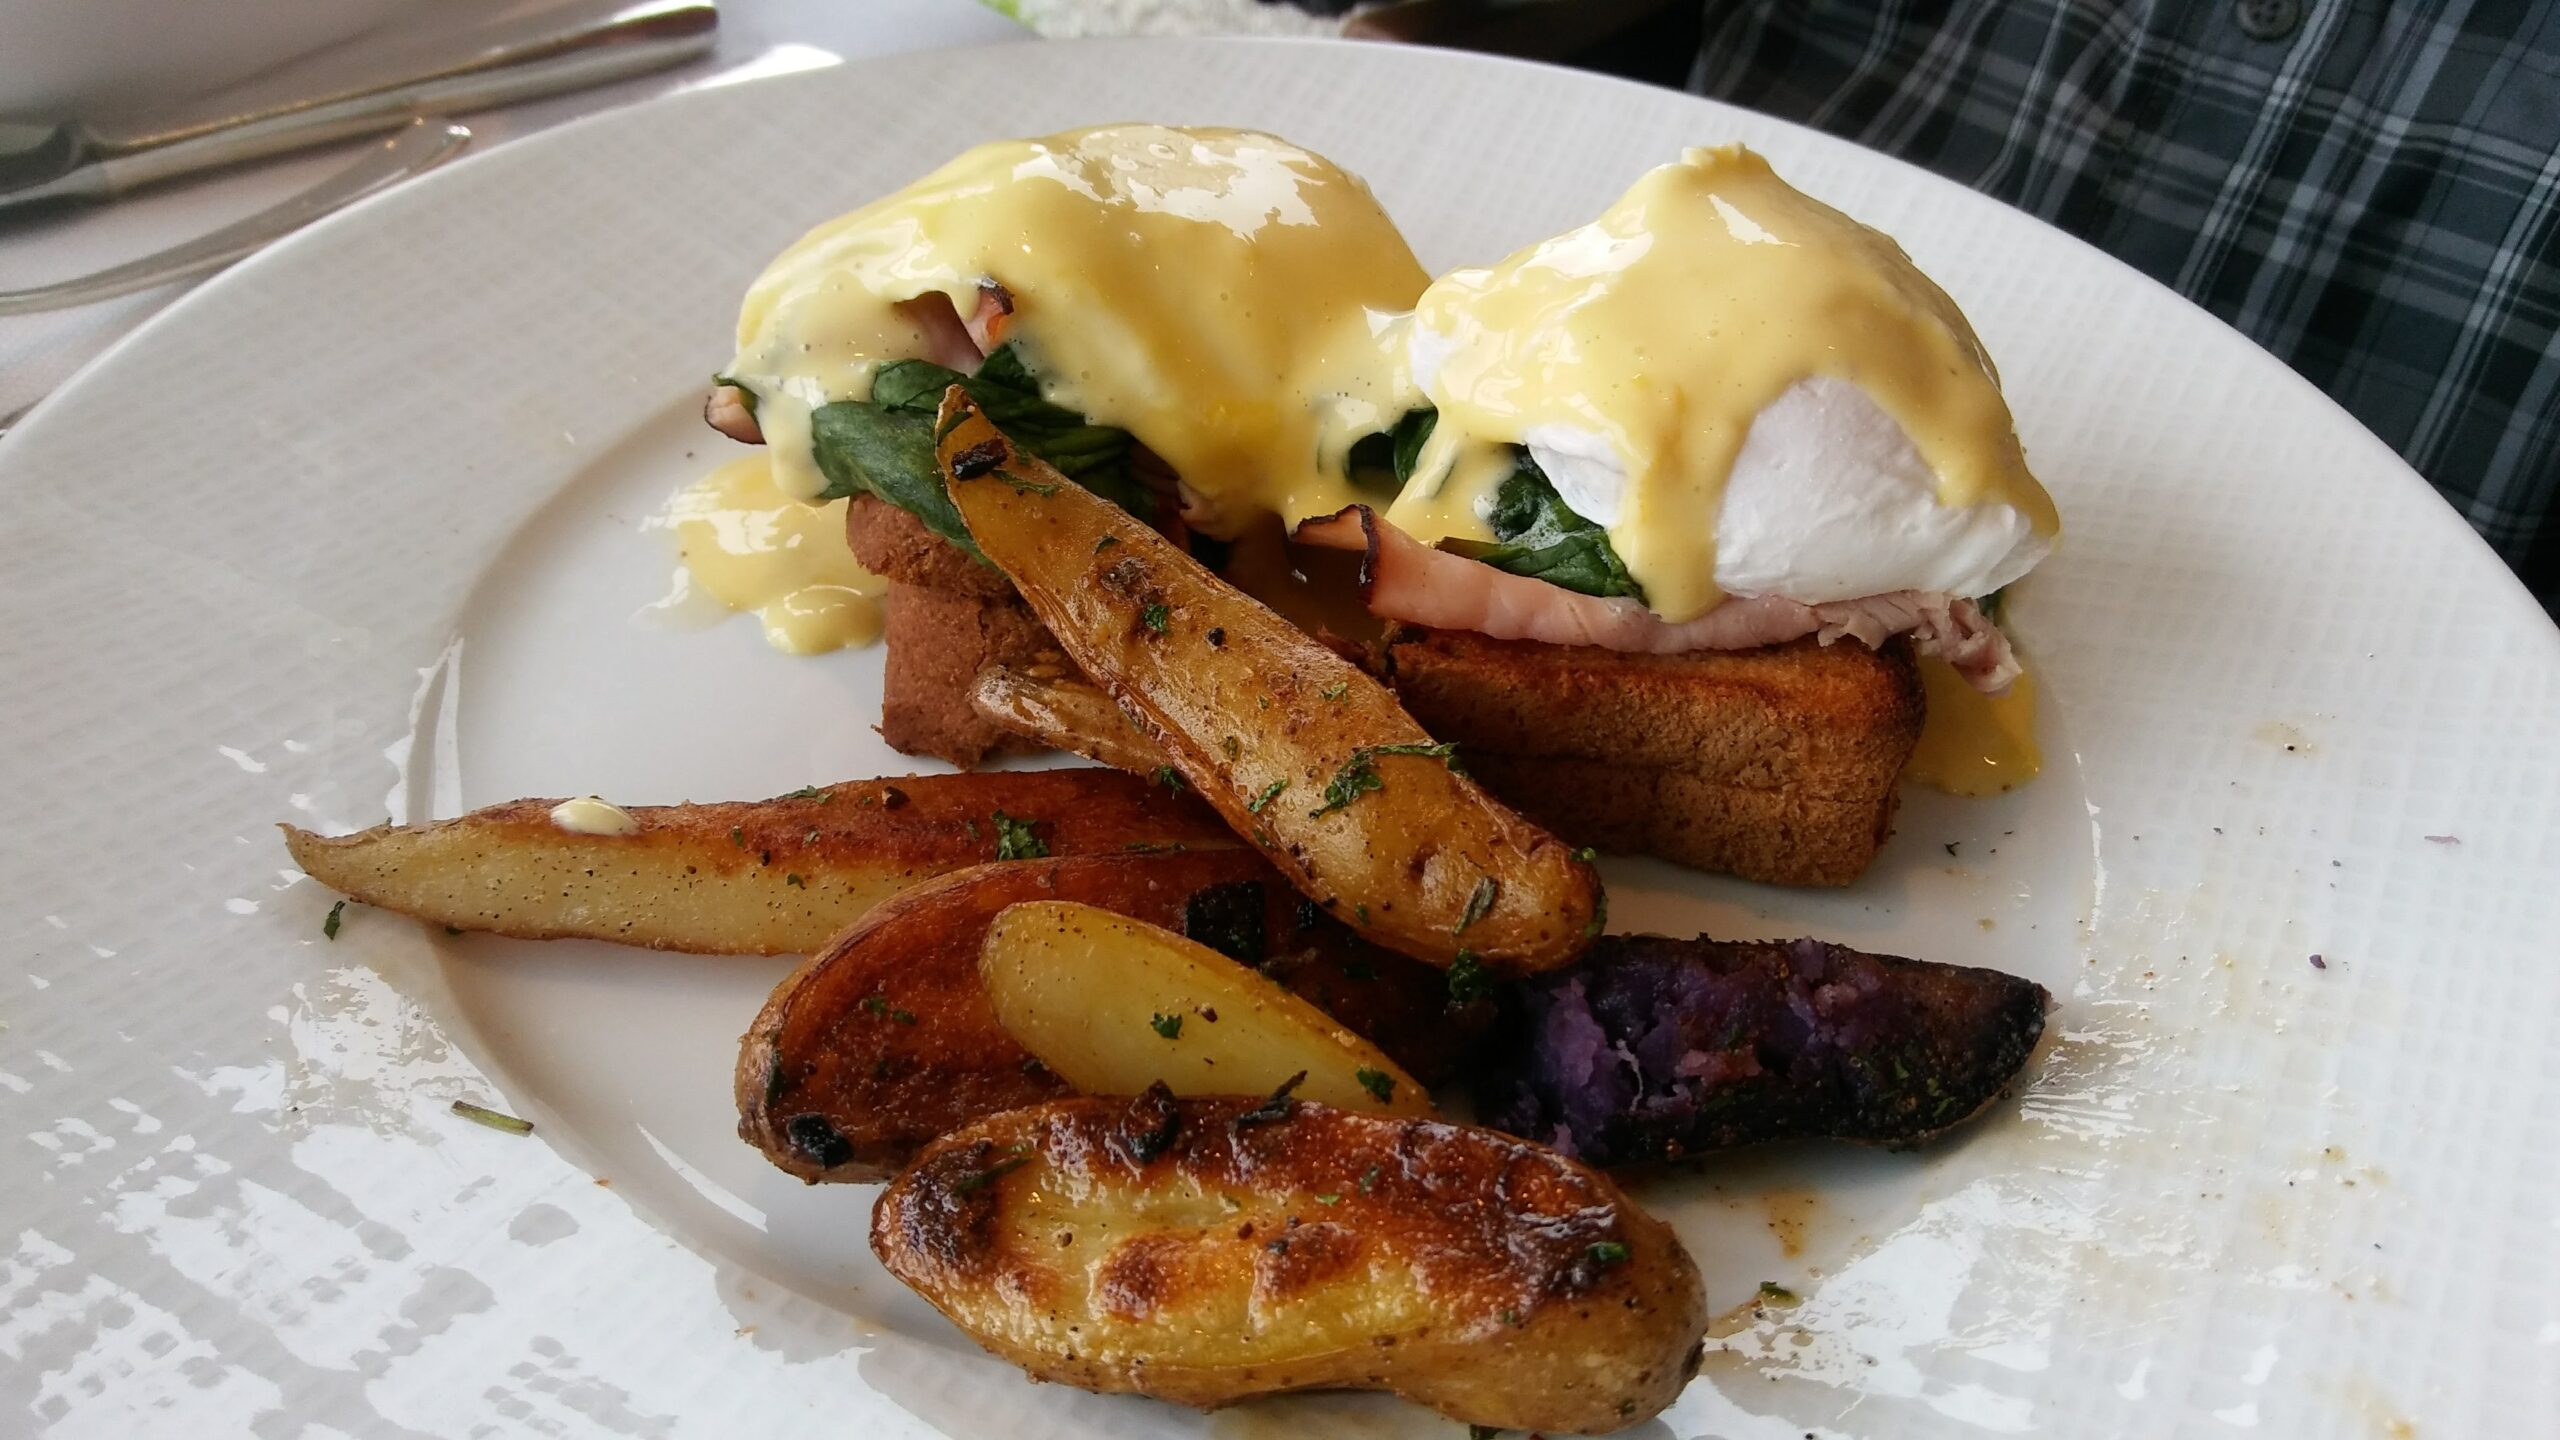 Delicious Eggs Benedict at Star Restaurant